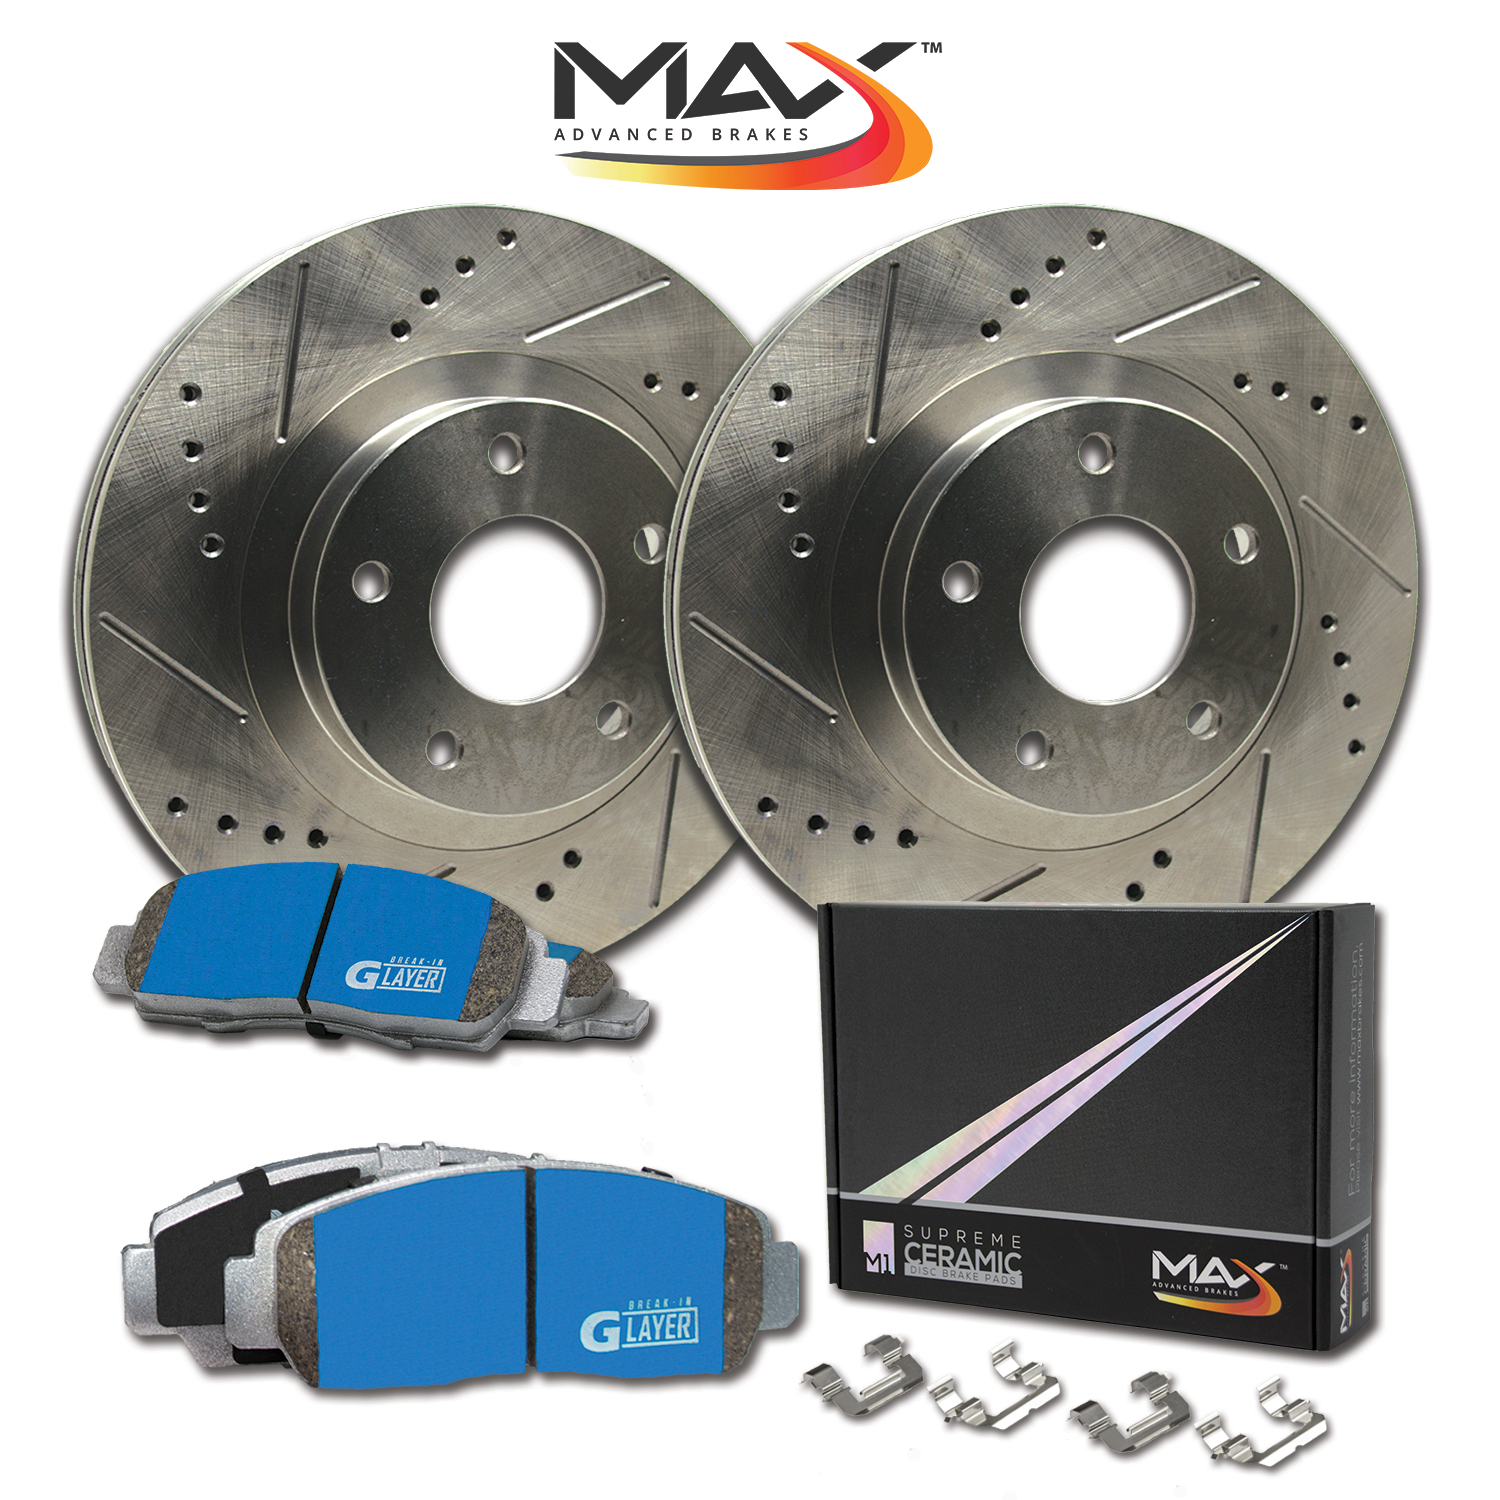 2009 2010 2011 Fits Infiniti FX35 Max Performance Ceramic Brake Pads F